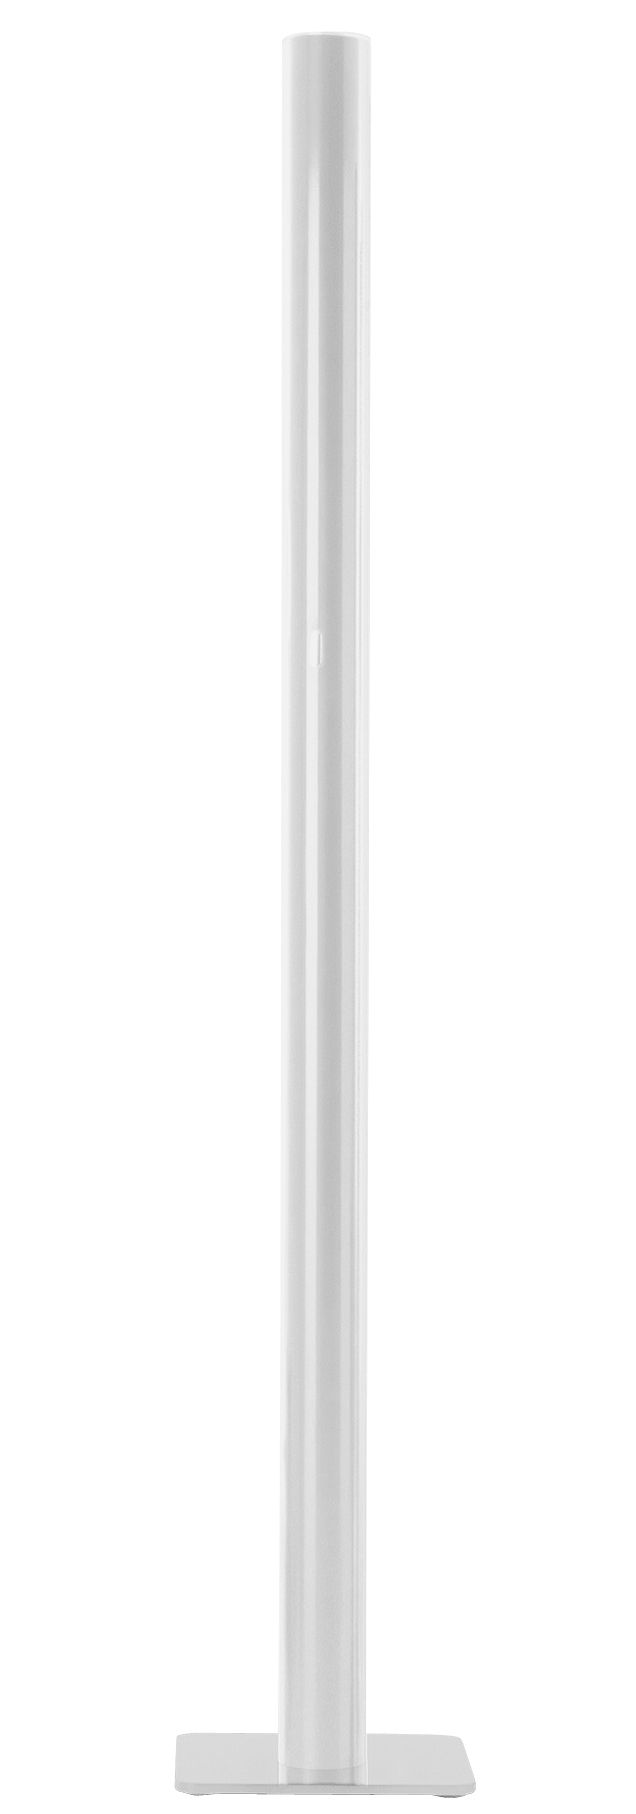 Lighting - Floor lamps - Ilio LED Floor lamp - / Bluetooth - H 175 cm by Artemide - White - Painted aluminium, Painted steel